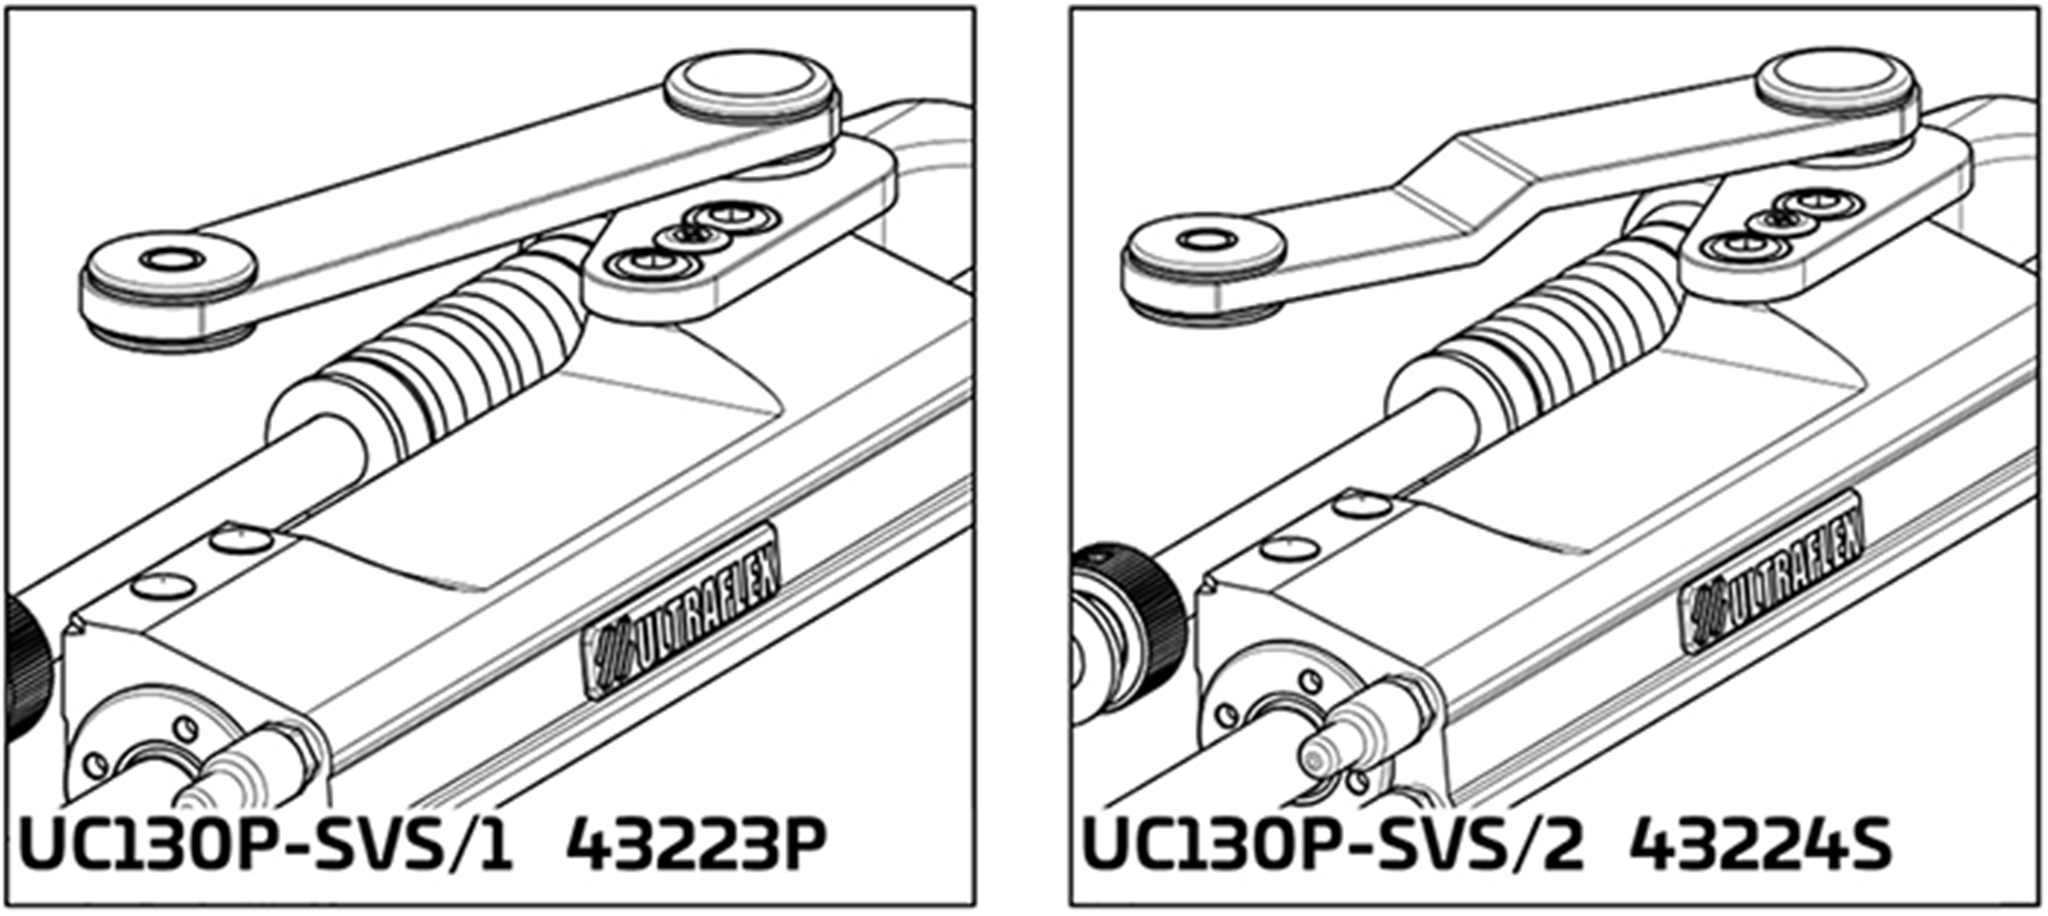 UC130 SVS Hydraulic Port Cylinder Application 1 and 2